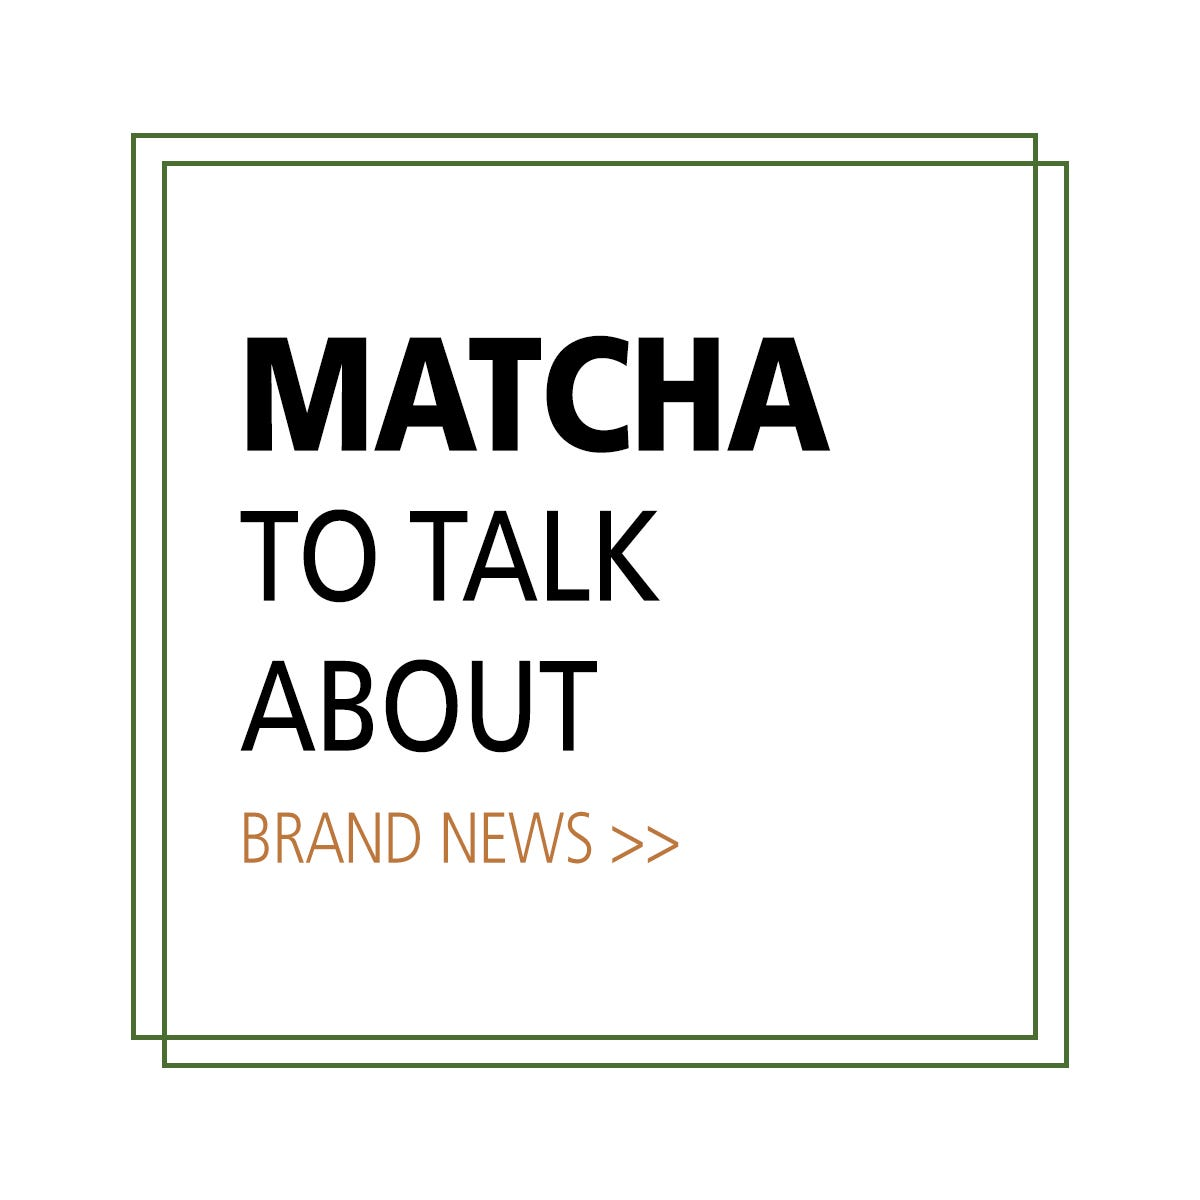 MATCHA TO TALK ABOUT